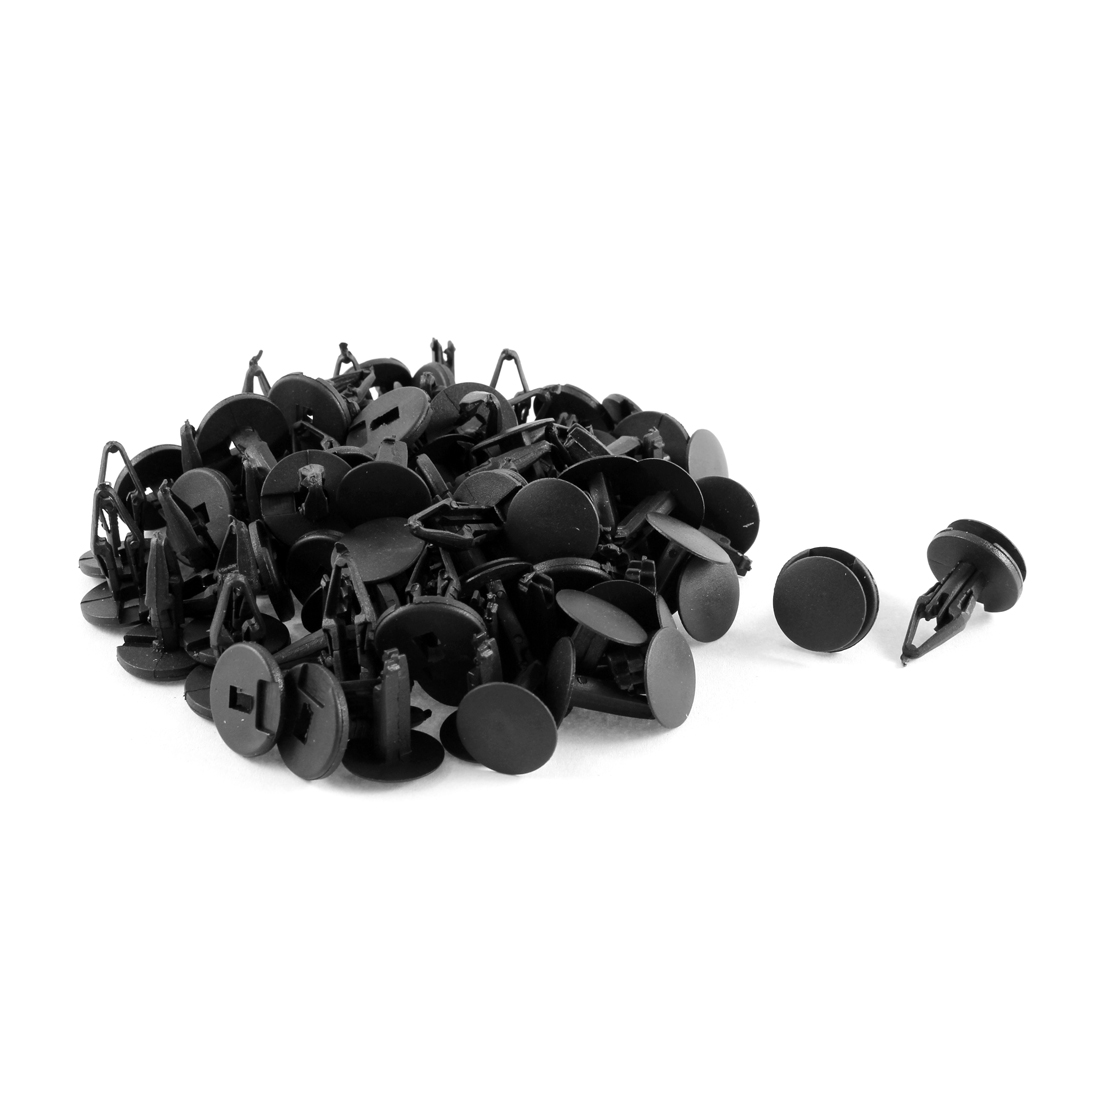 50 Pcs Black Plastic Splash Guard Moulding Bumper Clips 9mm x 17mm x 19mm